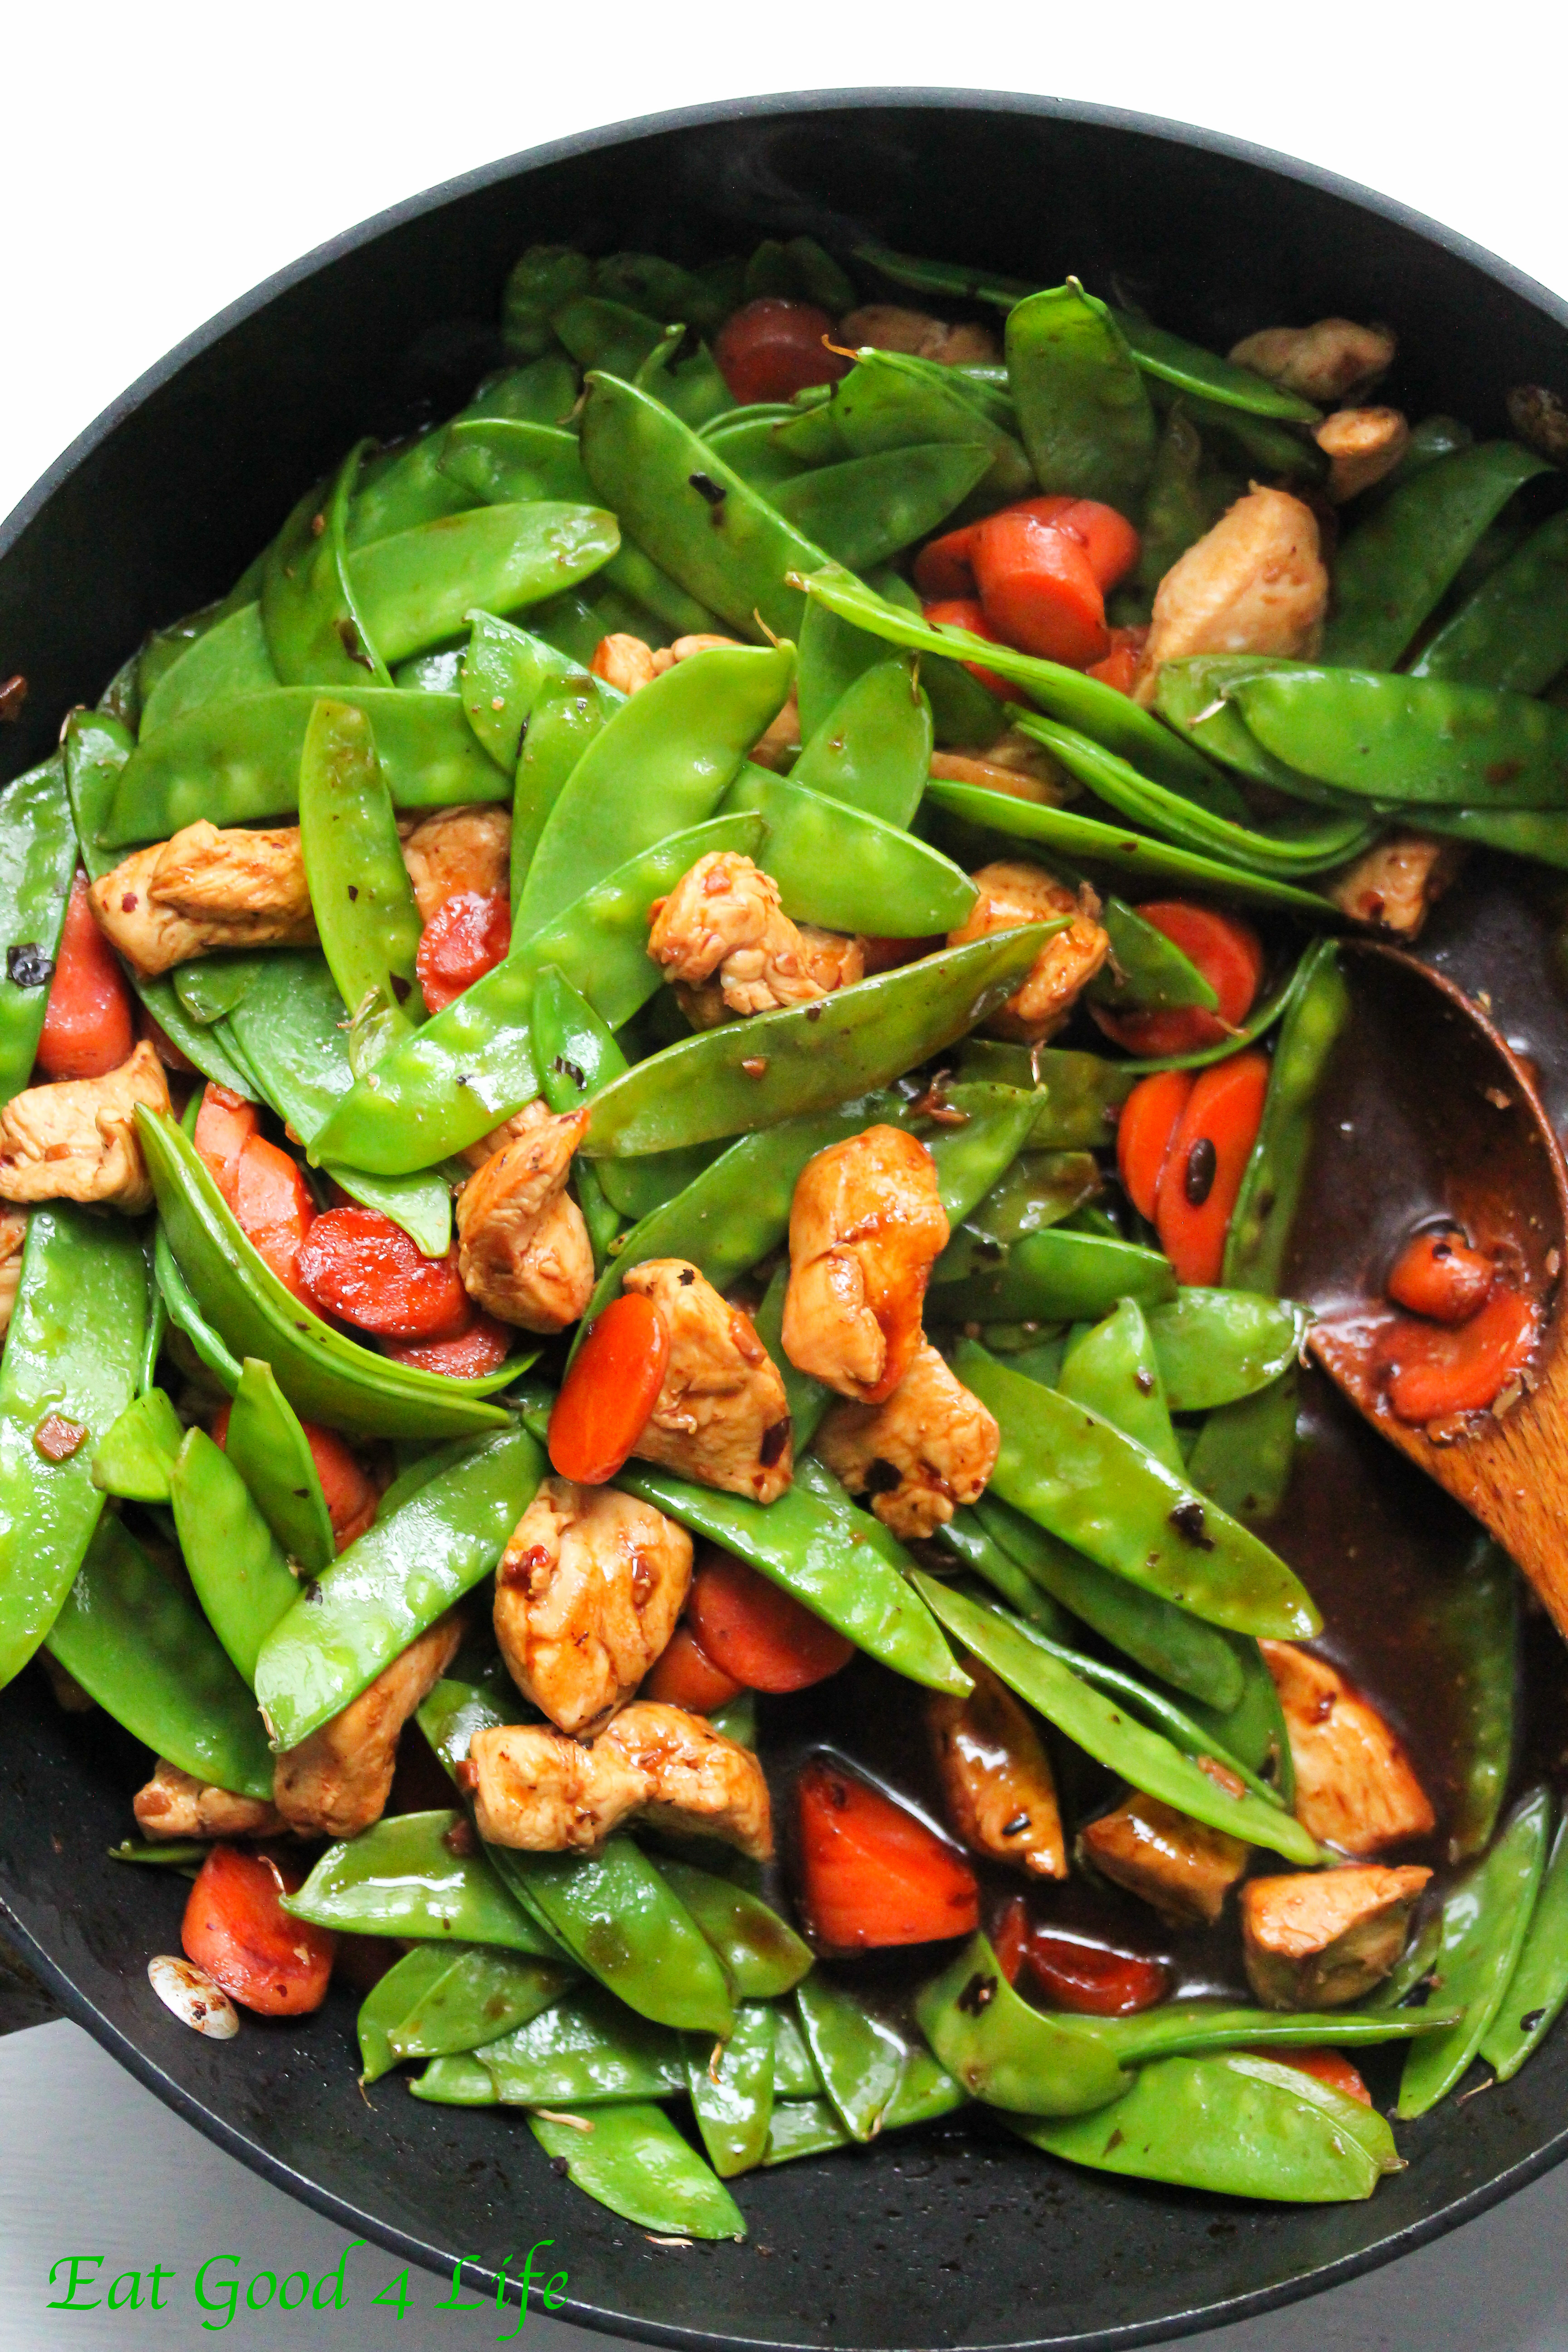 Black bean chicken stir-fry with snow peas and carrots